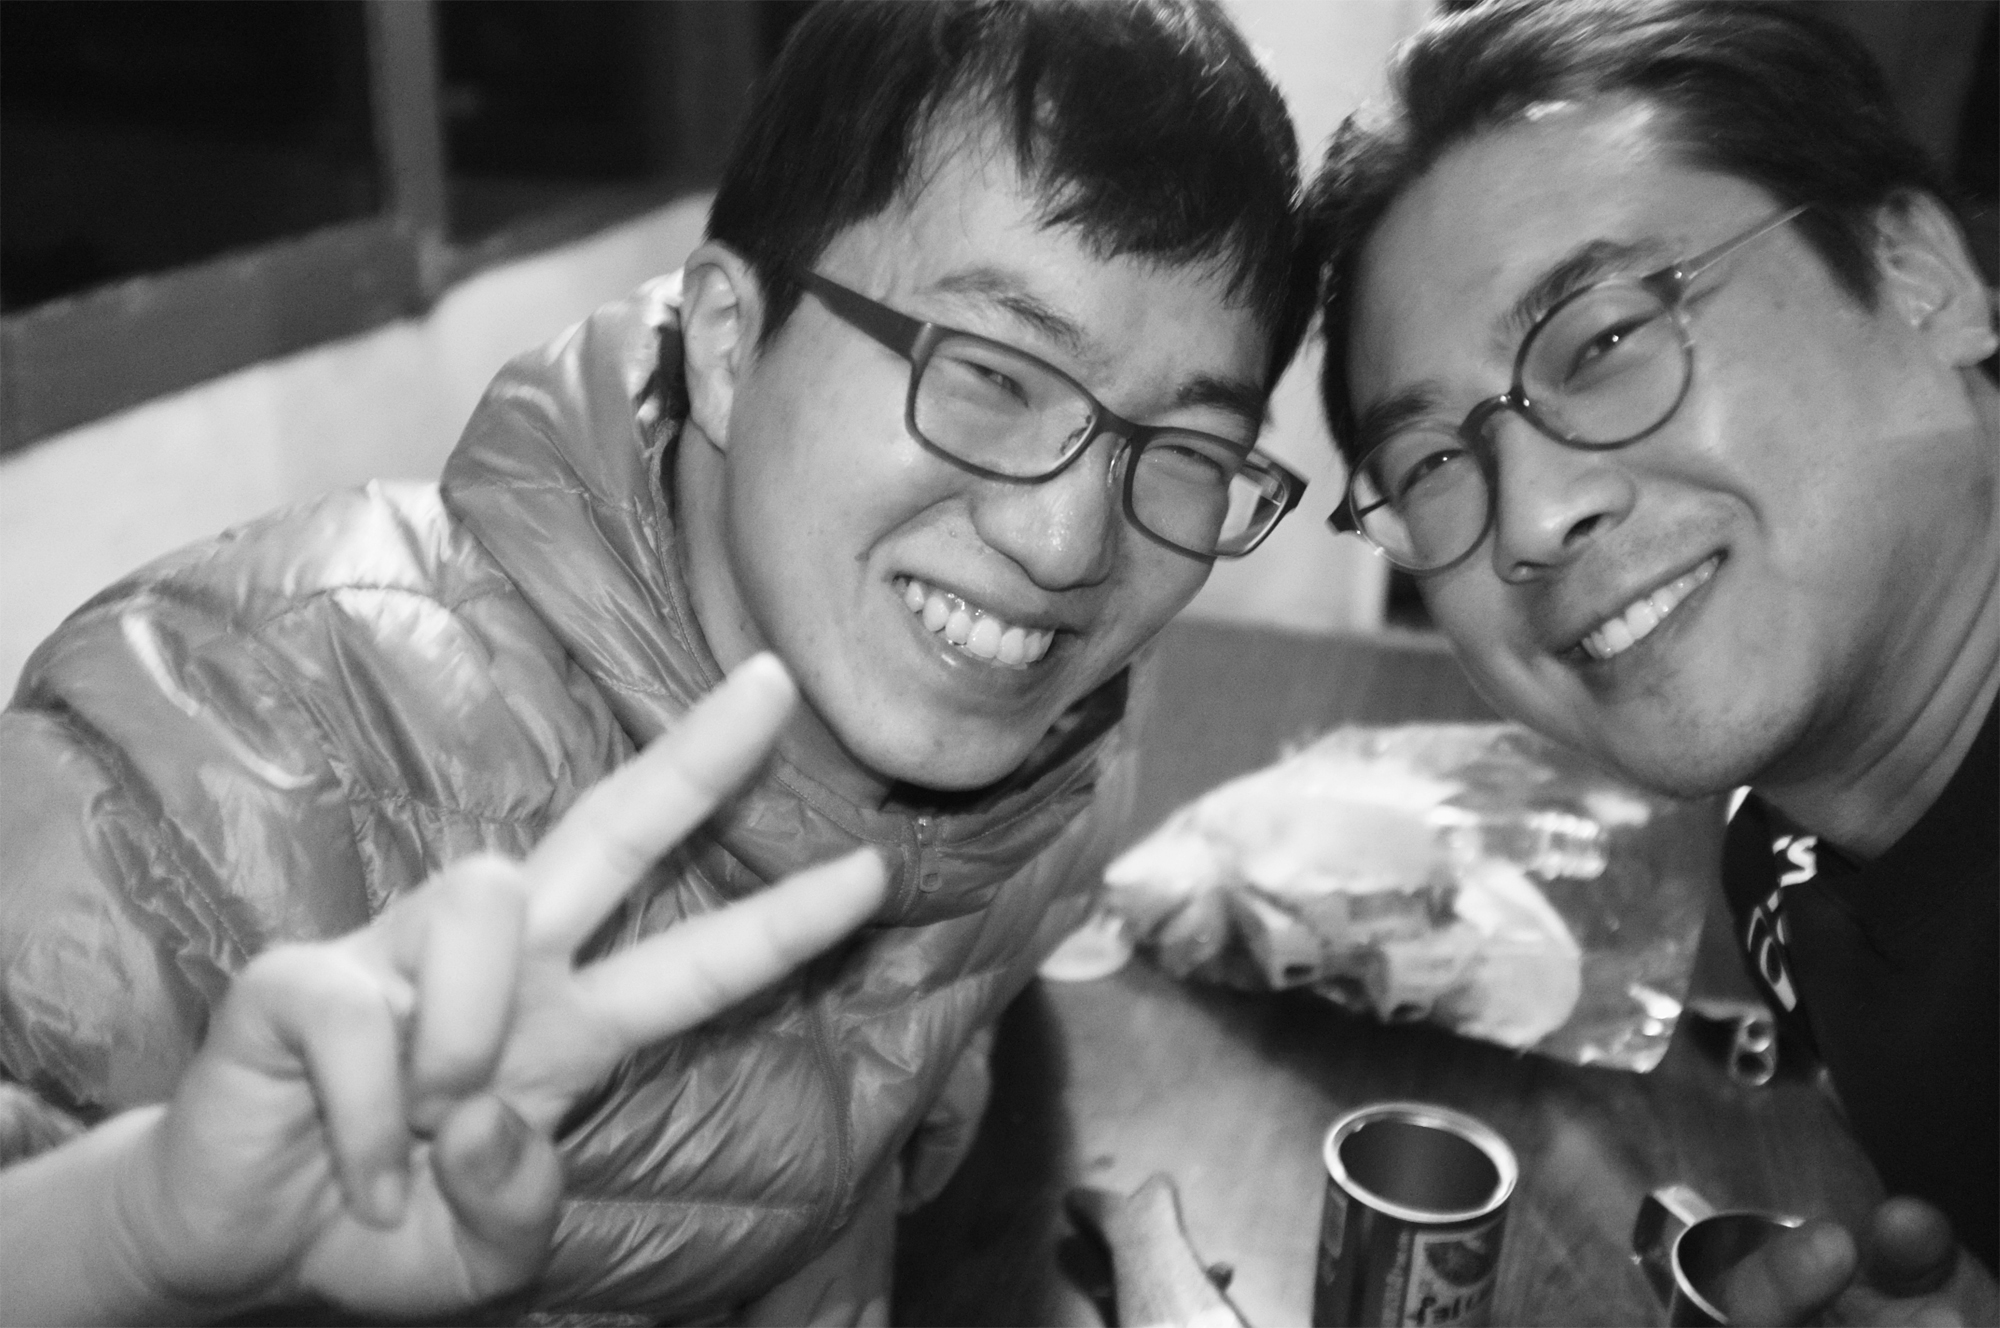 Songbaik Jin from the C-Lab at Samsung Printing Solution and Sangwook Cho from the Power Device Development Team at System LSI Samsung Electronics at the Himalayas